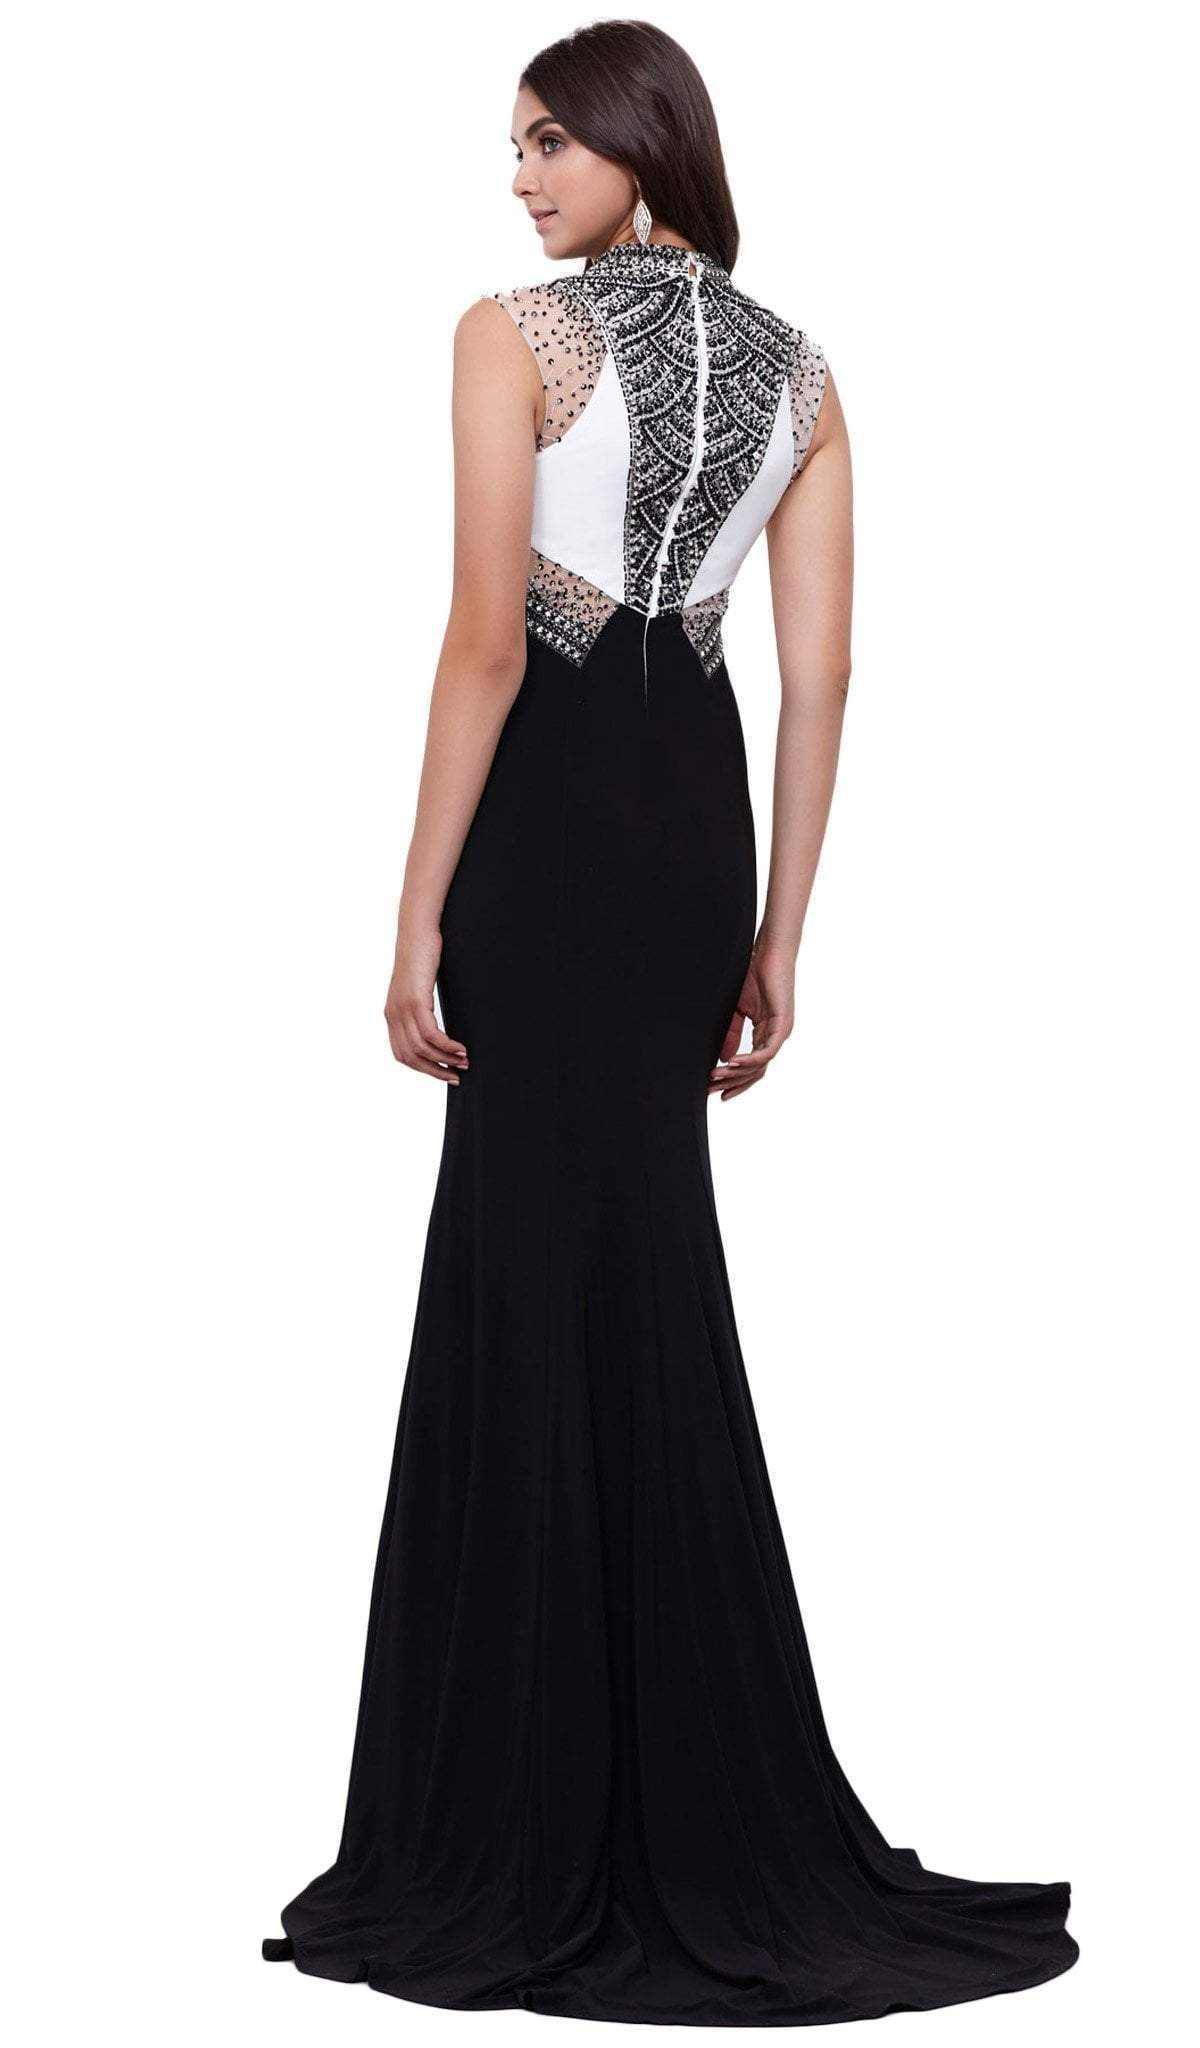 Nox Anabel - Embellished Long Evening Gown 8364SC